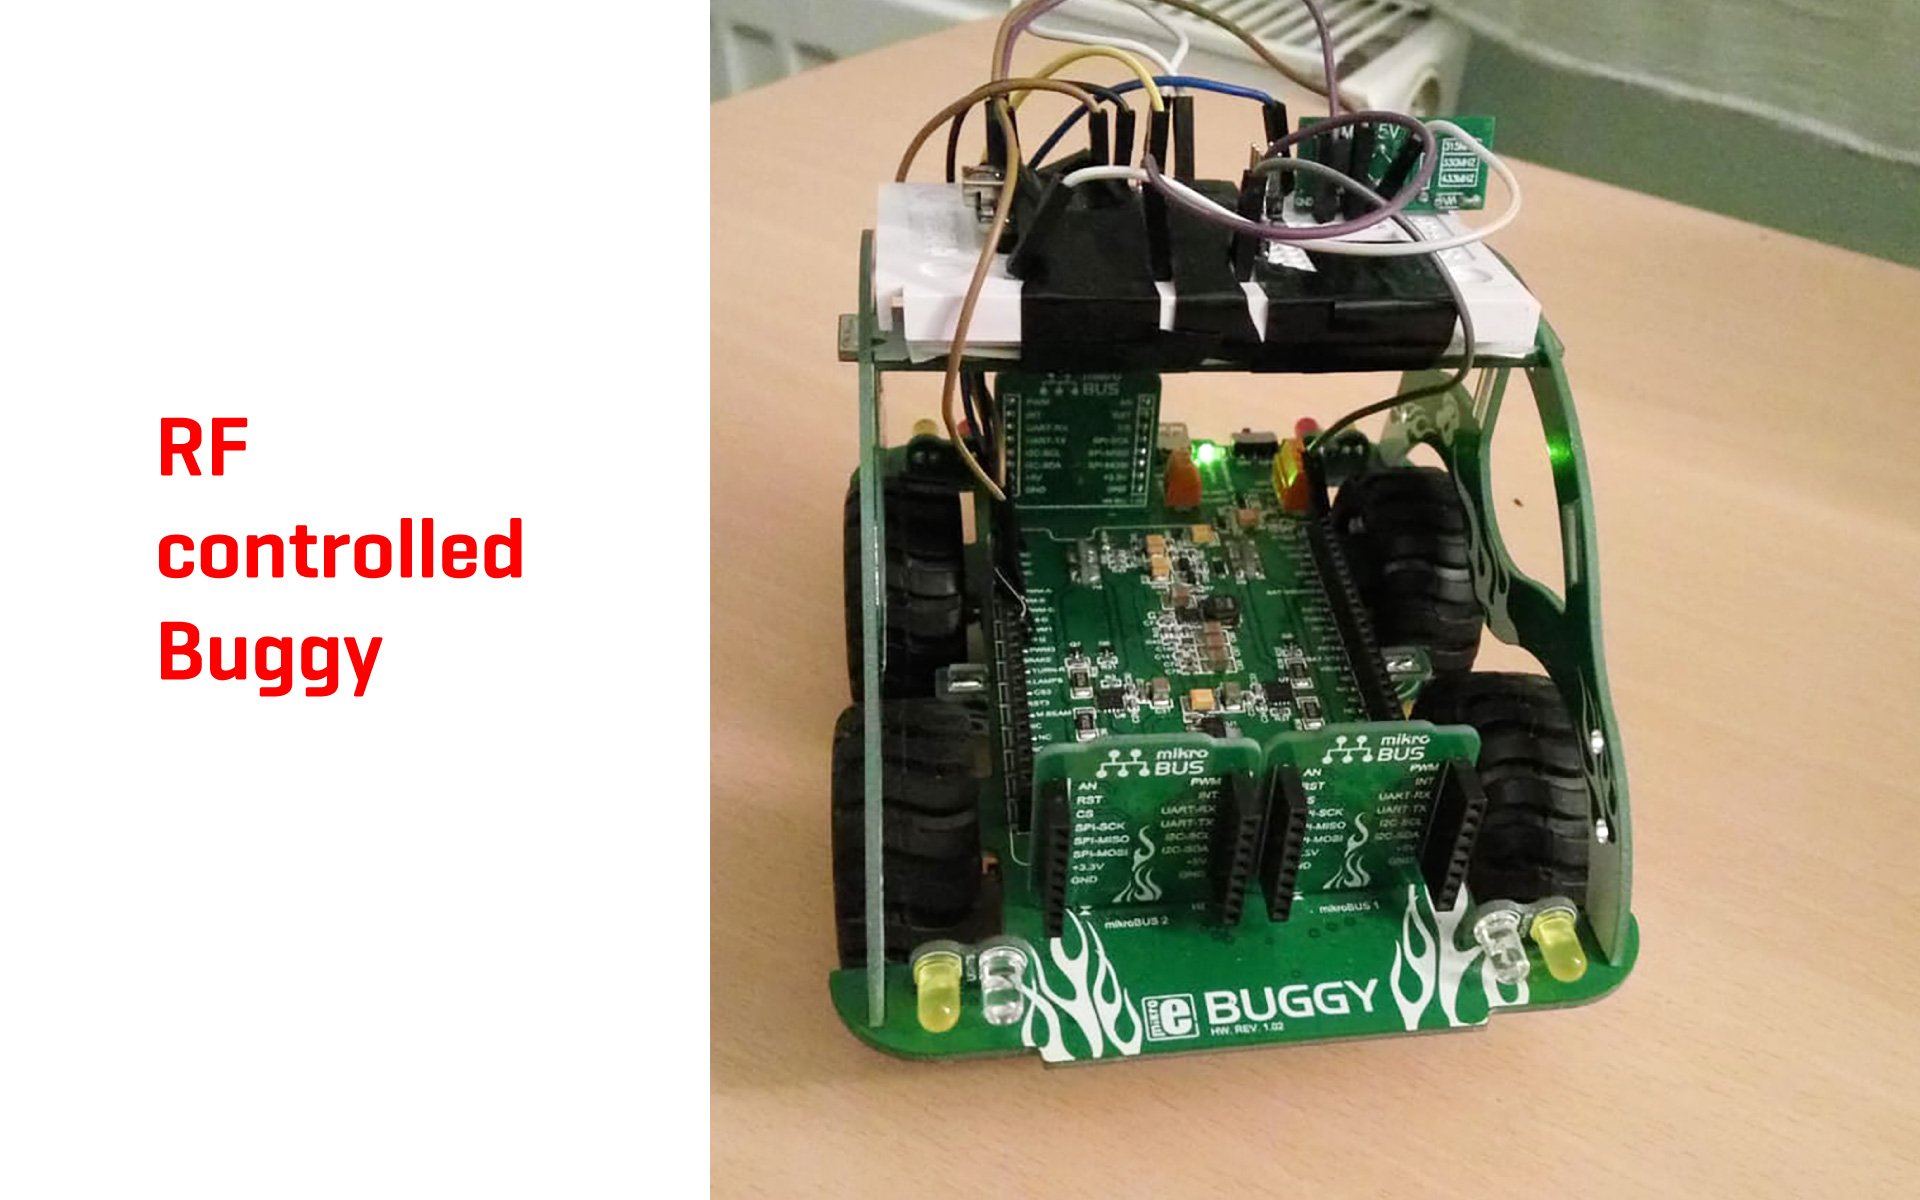 RF controllable Buggy project